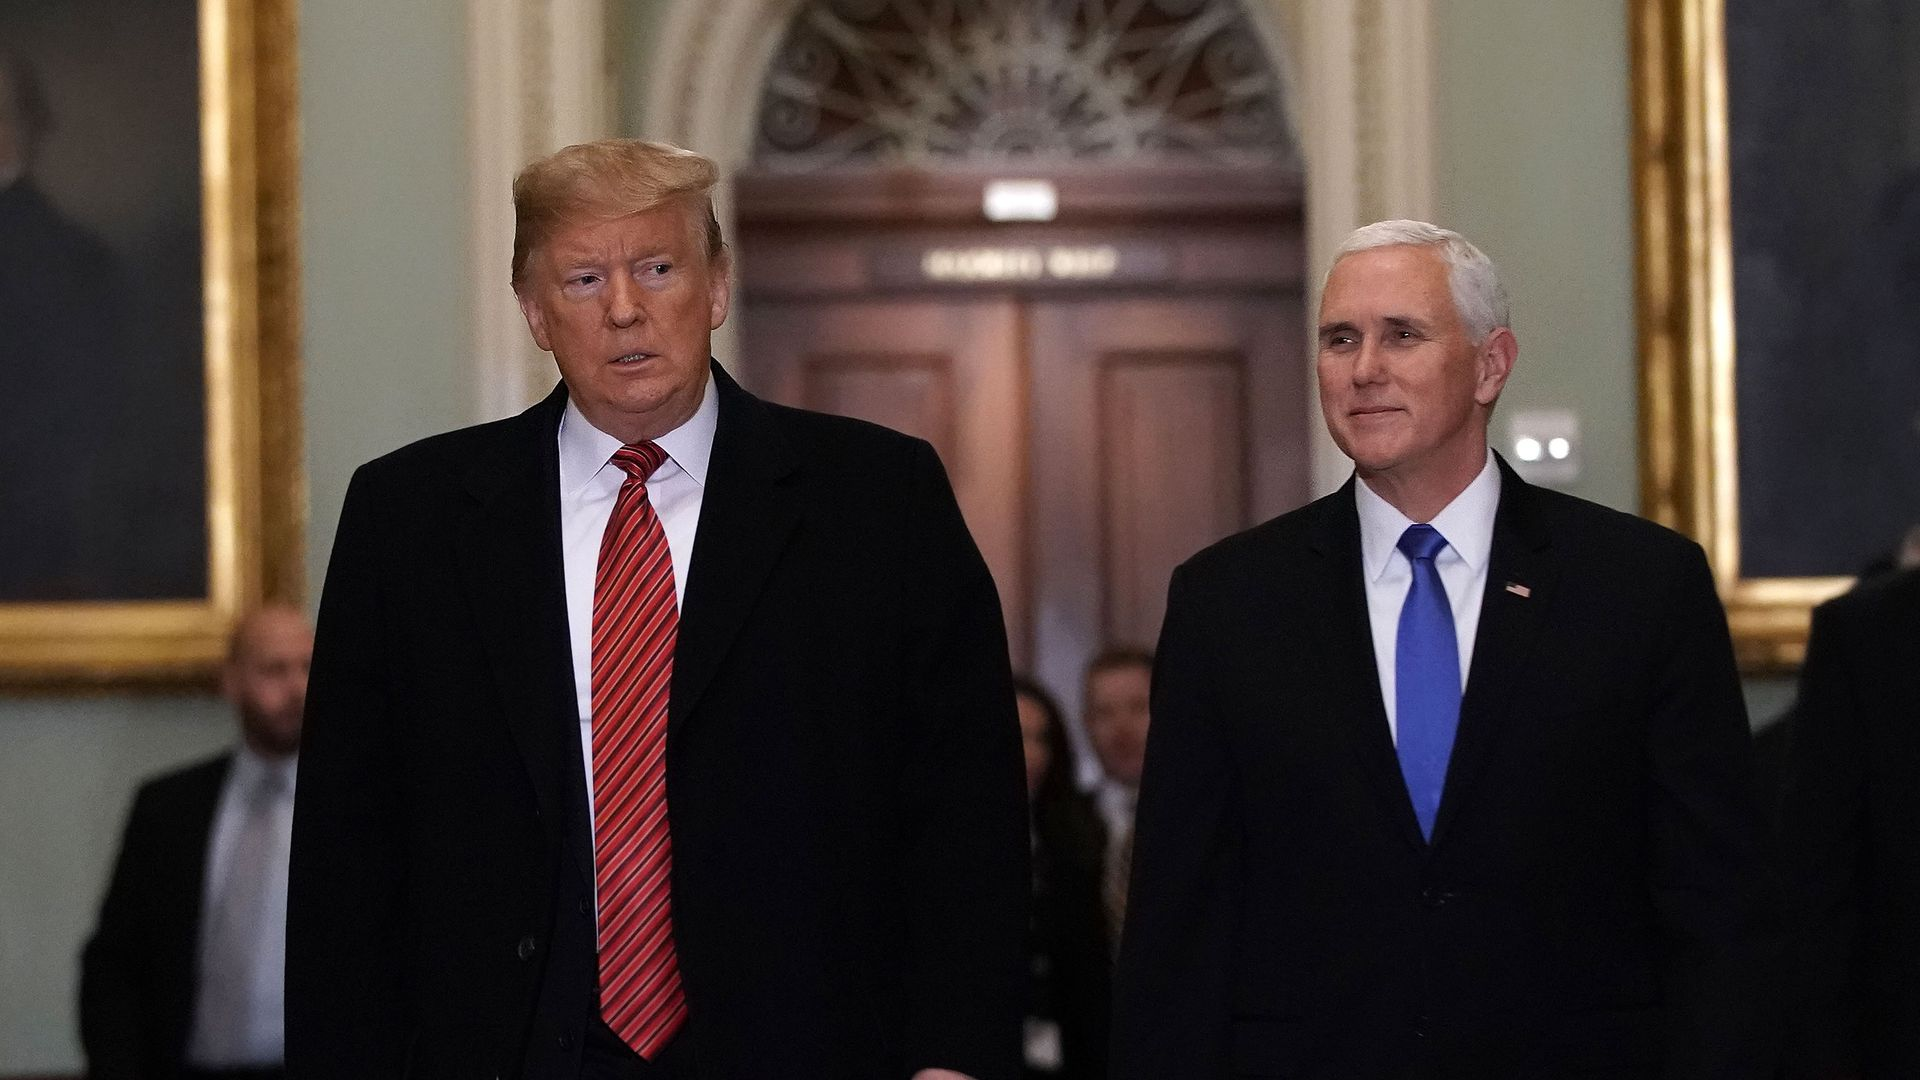 Pence and trump walking together.